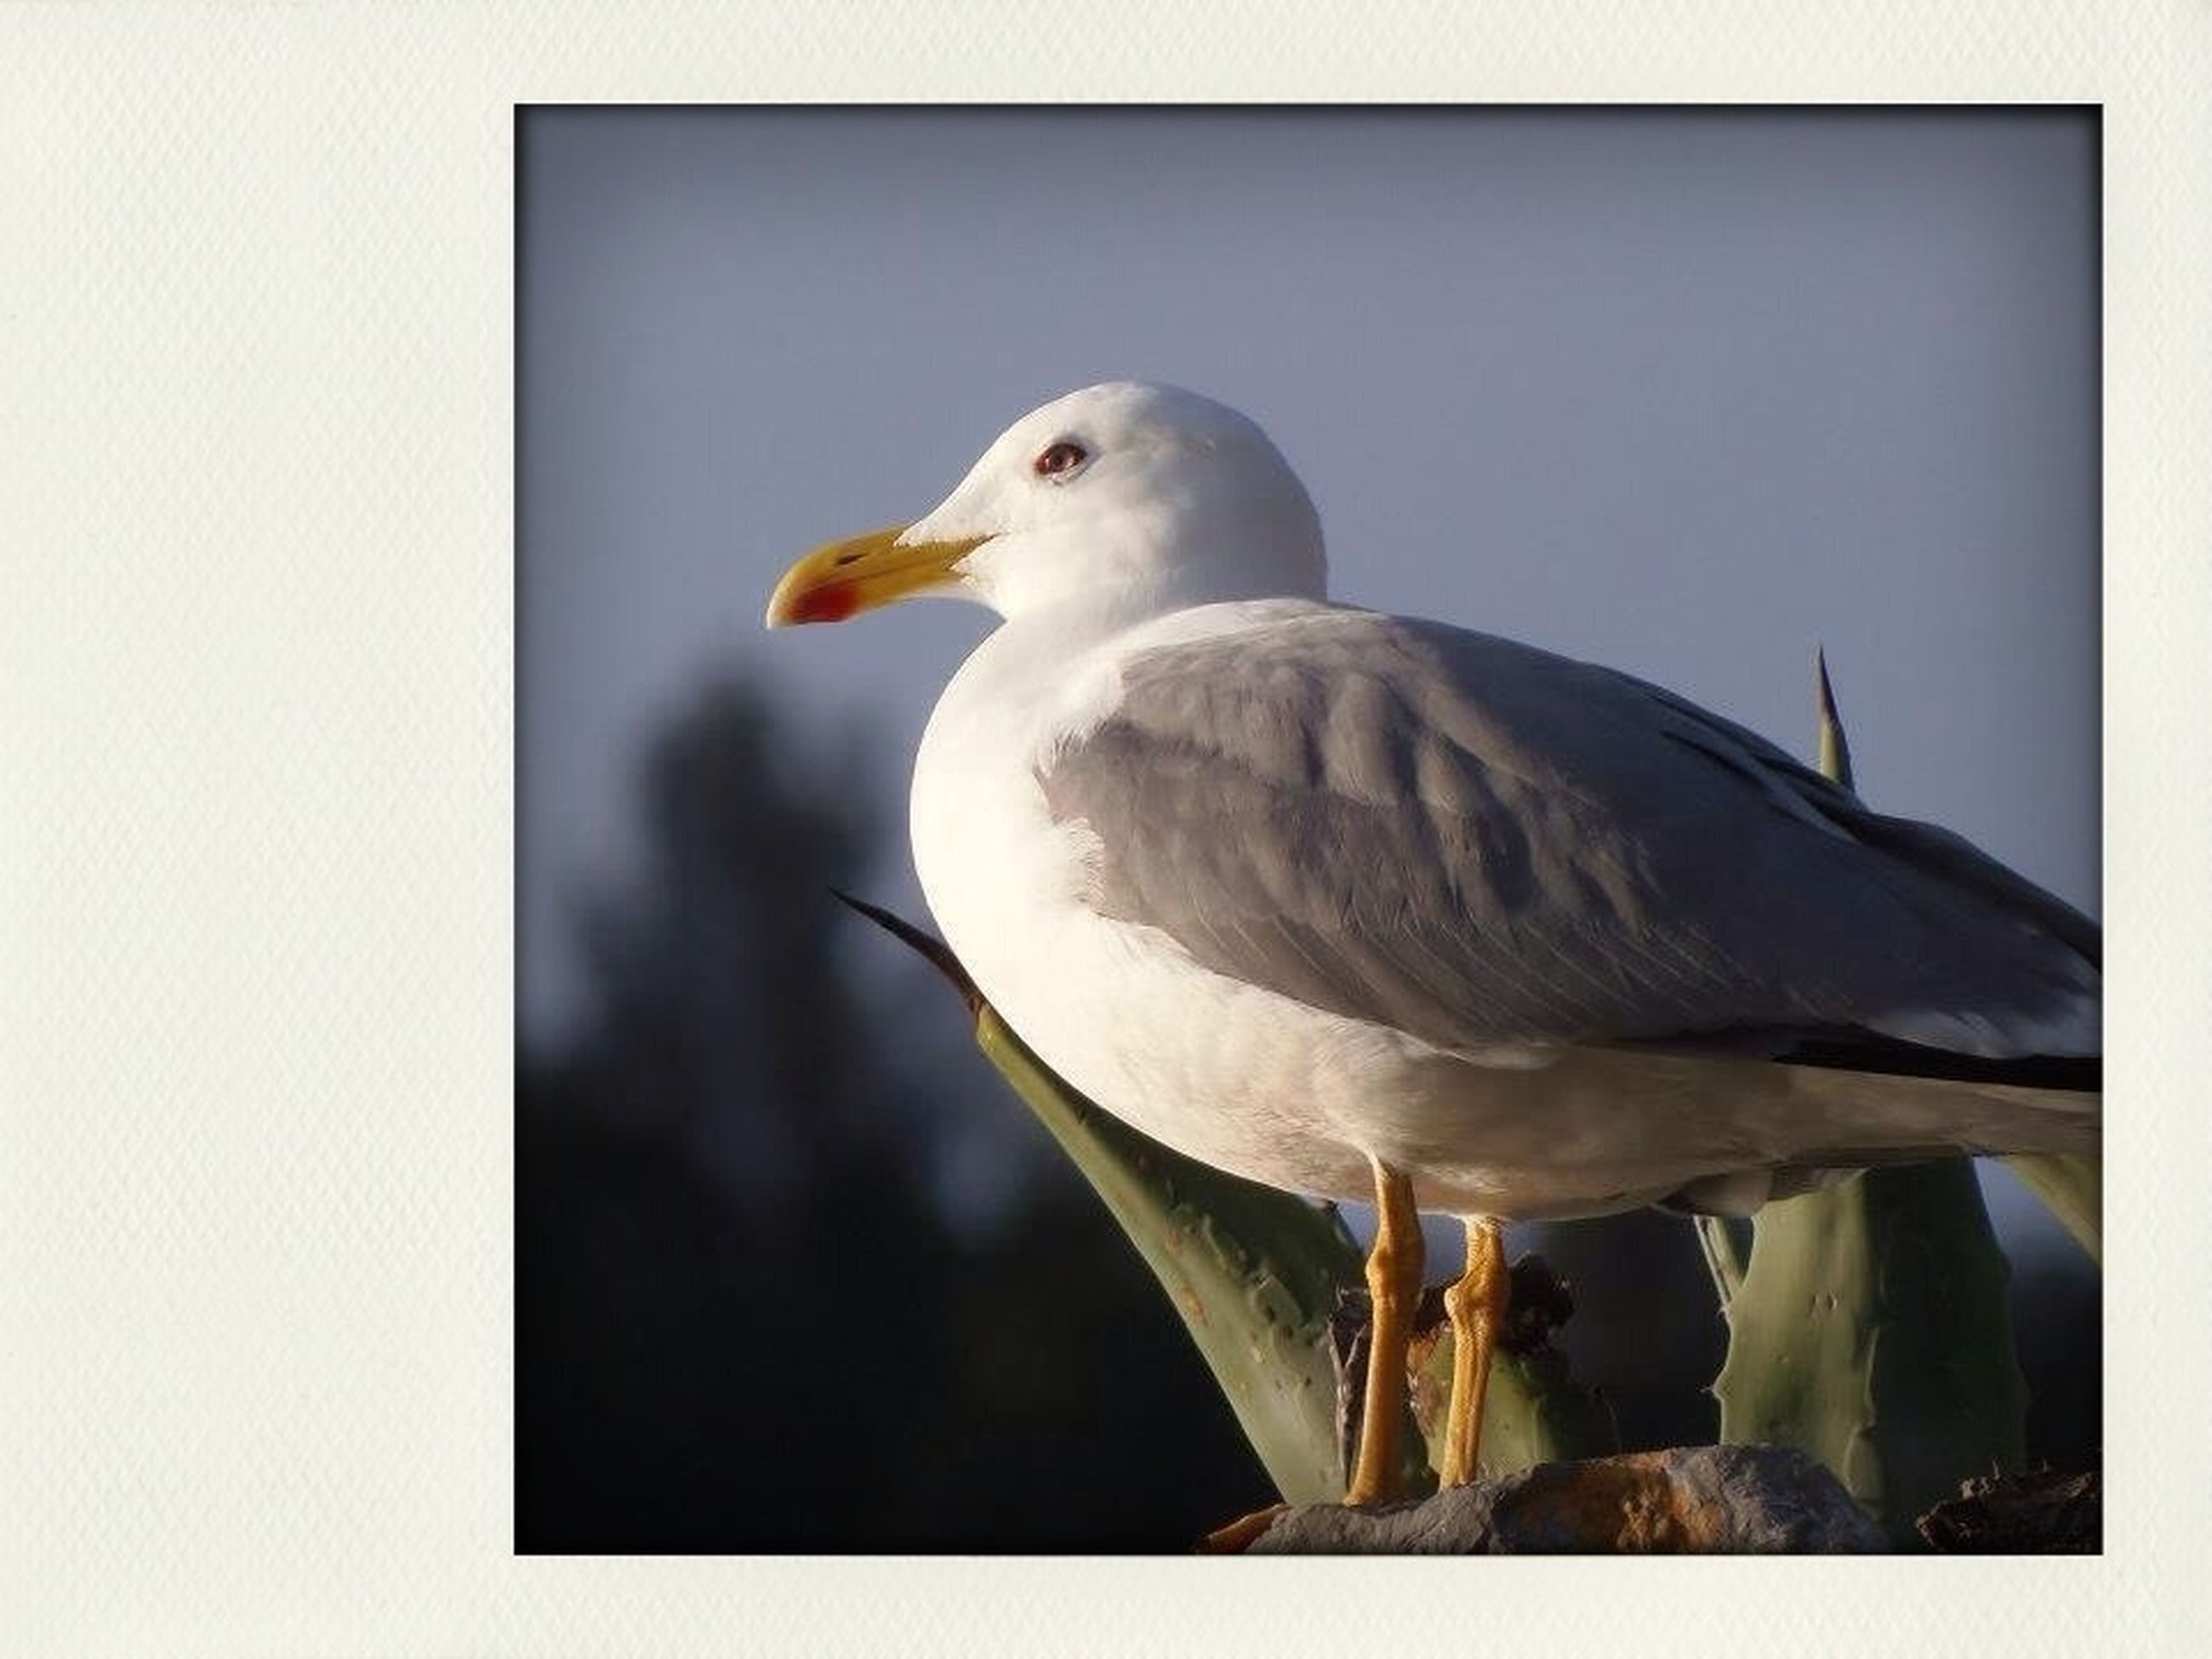 animal themes, bird, animals in the wild, wildlife, one animal, transfer print, seagull, auto post production filter, perching, beak, zoology, full length, side view, white color, vertebrate, close-up, nature, clear sky, no people, day